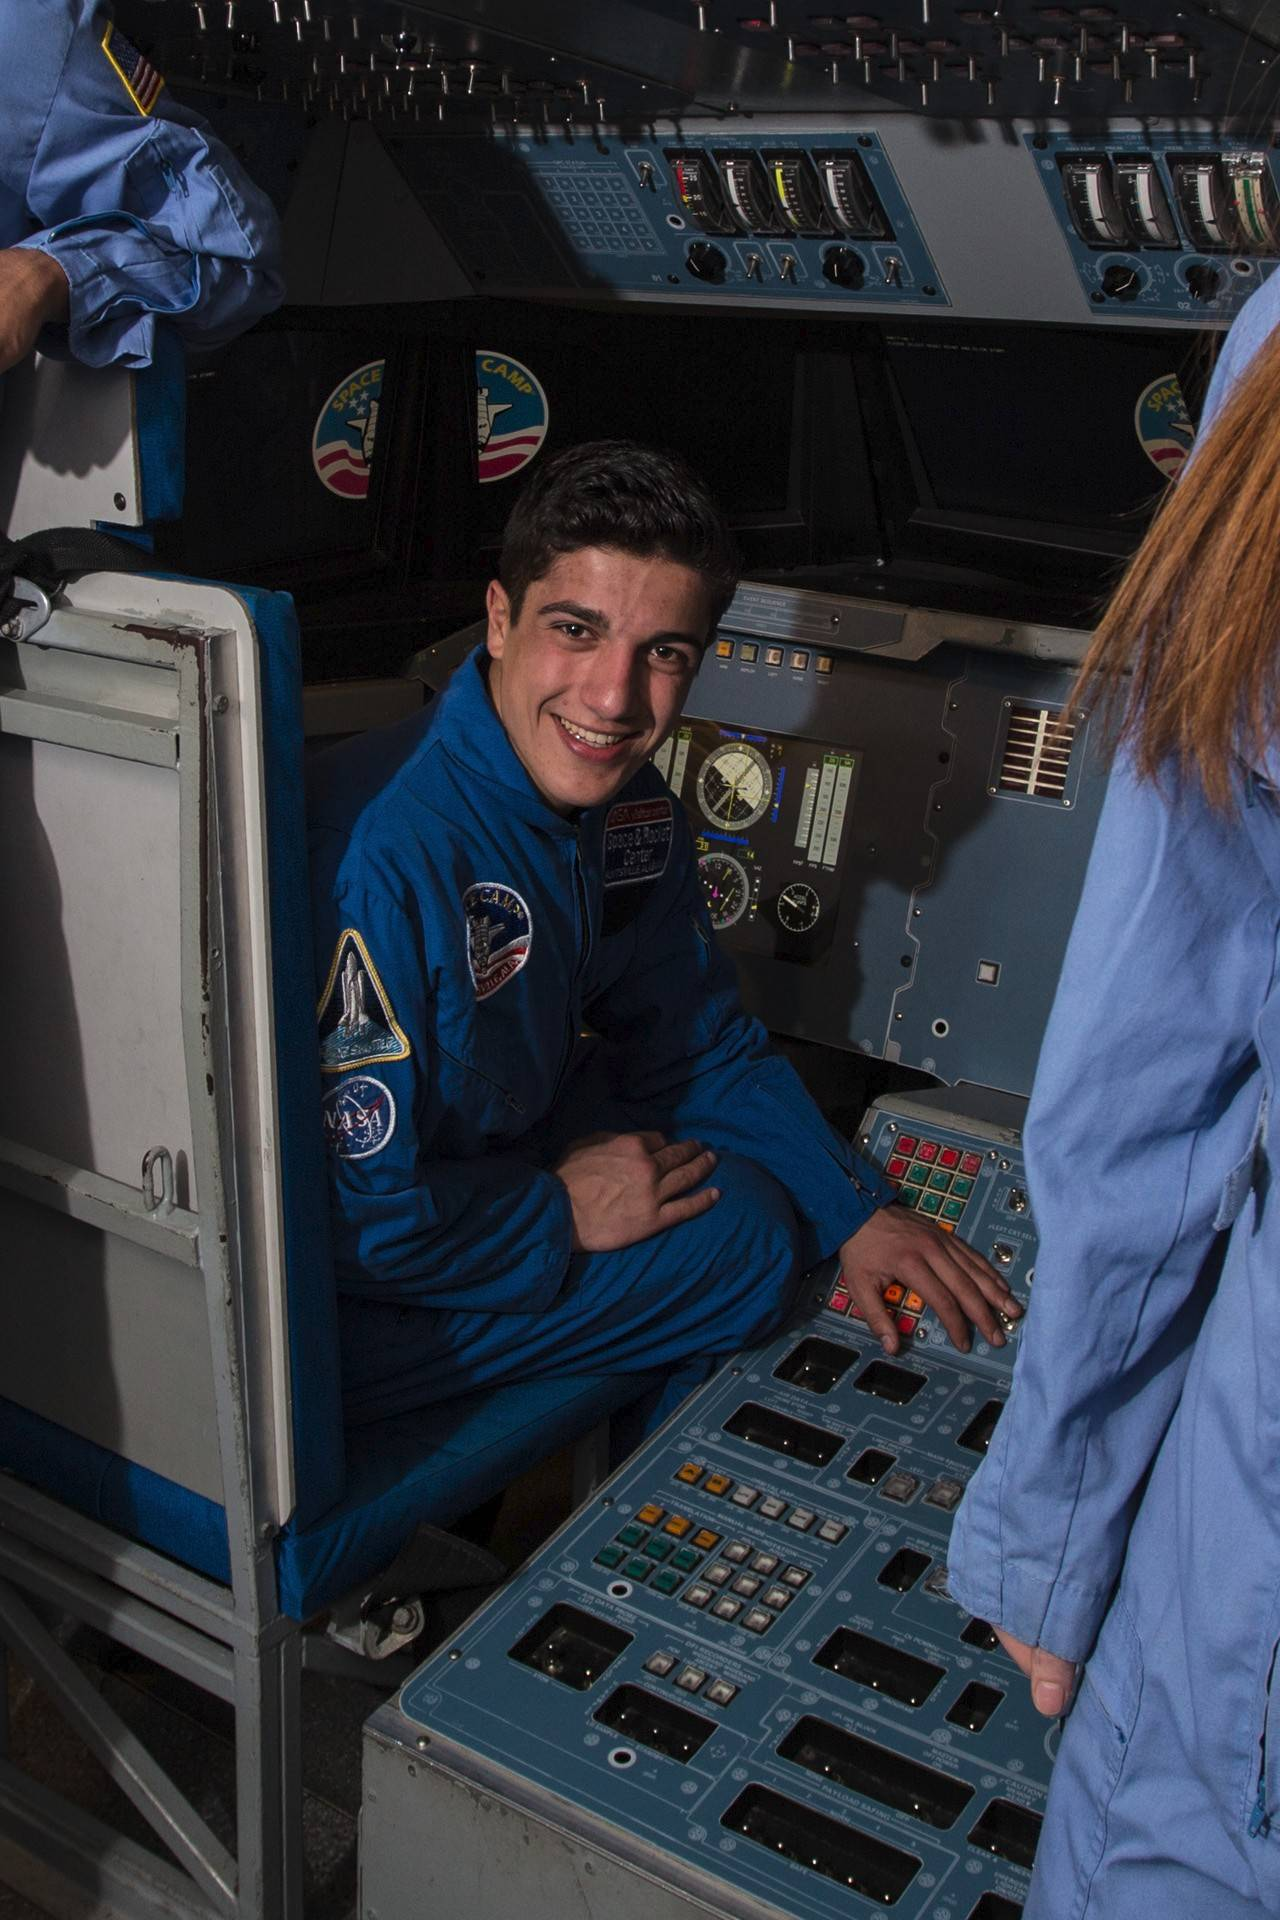 Nikitas Adamopoulos of Gurnee is at the controls of a space shuttle simulator aviation program that reinforces leadership, teamwork and decision-making while building realistic piloting skills.